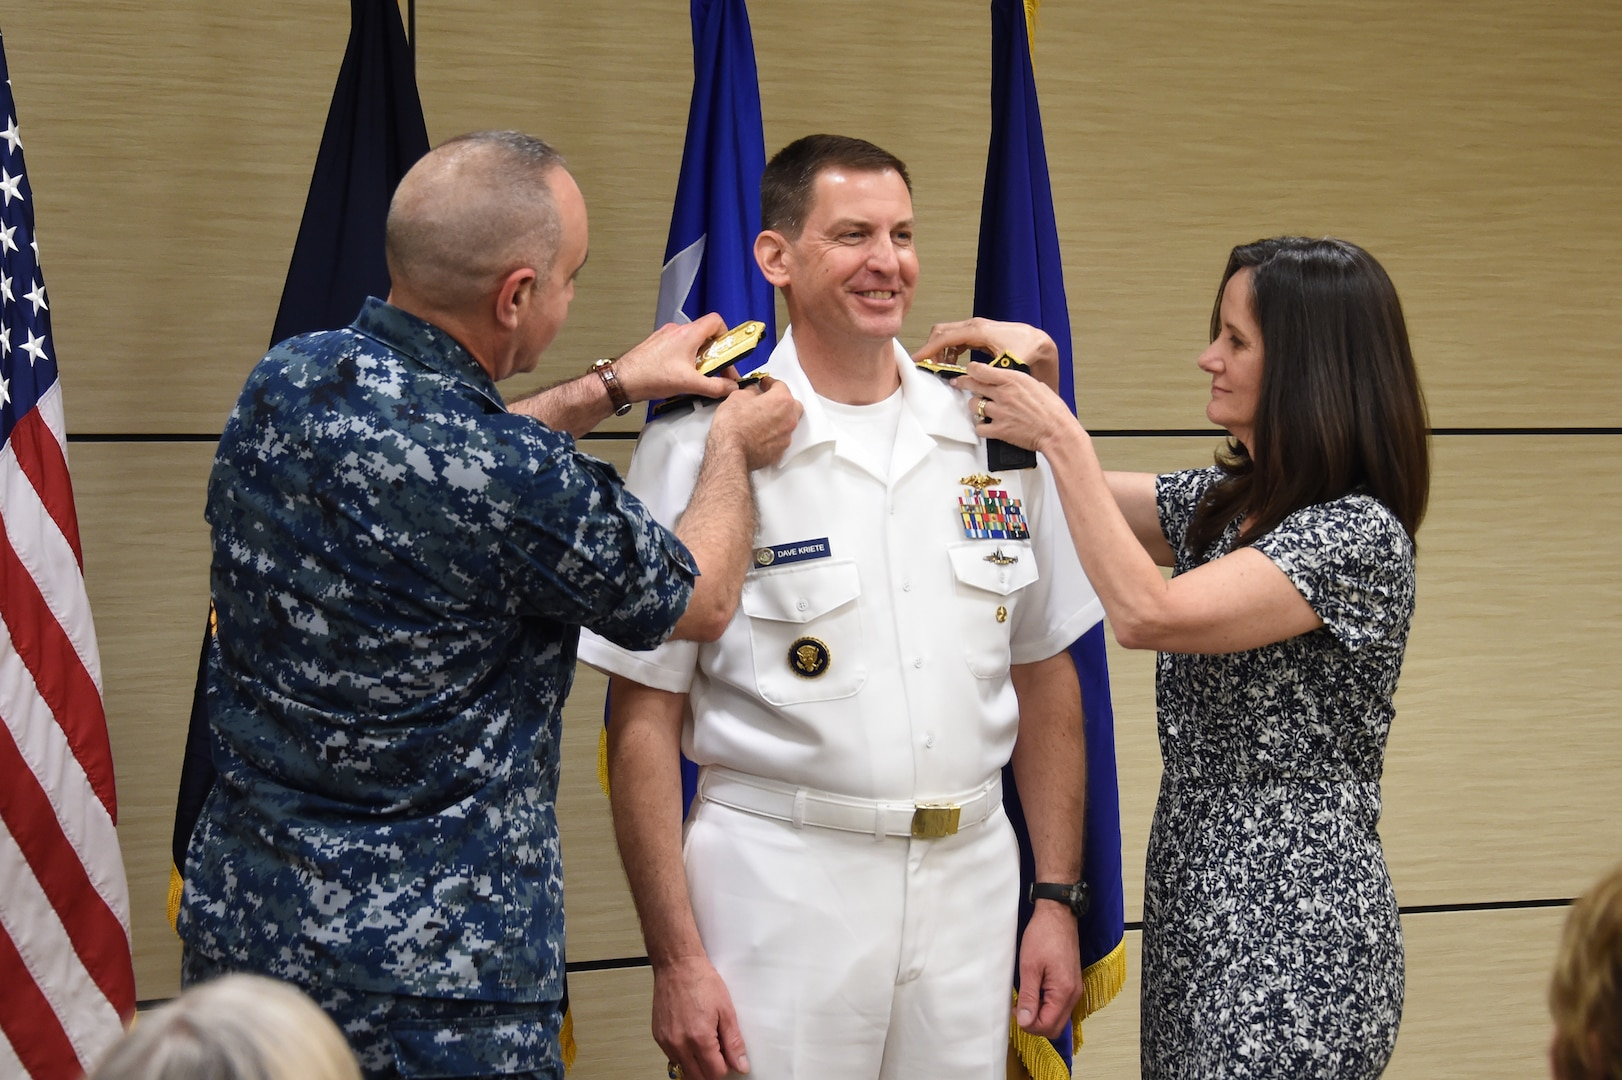 U.S. Navy Vice Adm. Dave Kriete (center), incoming deputy commander of U.S. Strategic Command (USSTRATCOM), receives his new rank insignia from his wife Kathleen (right) and Vice Adm. Charles Richard, outgoing USSTRATCOM deputy commander, during a ceremony at Offutt Air Force Base, Neb., June 15, 2018. Following his promotion, Kriete replaced Richard as USSTRATCOM deputy commander. He previously served as the National Security Council director of strategic capabilities policy. U.S. Strategic Command has global responsibilities assigned through the Unified Command Plan that include strategic deterrence, nuclear operations, space operations, joint electromagnetic spectrum operations, global strike, missile defense, and analysis and targeting.